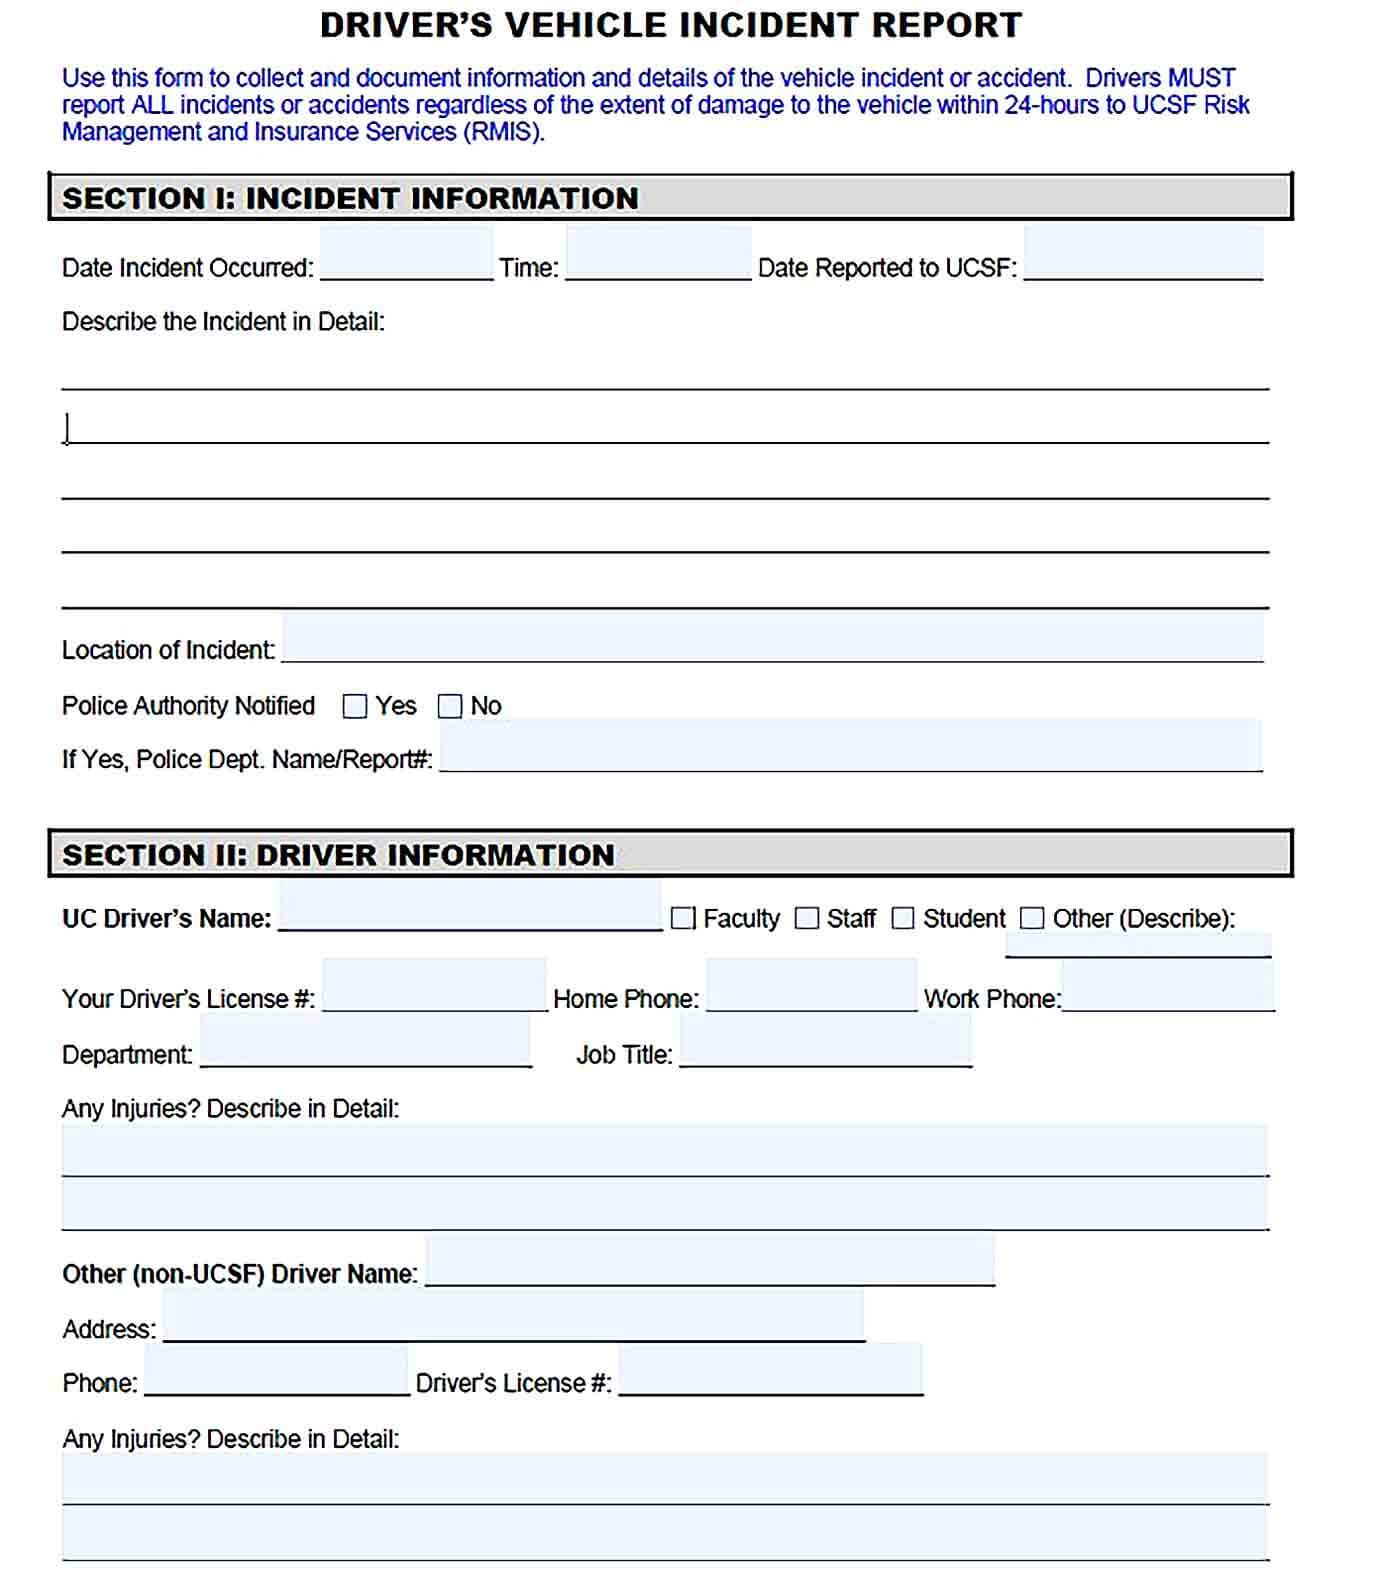 Sample Drivers Vehicle Incident Report Template